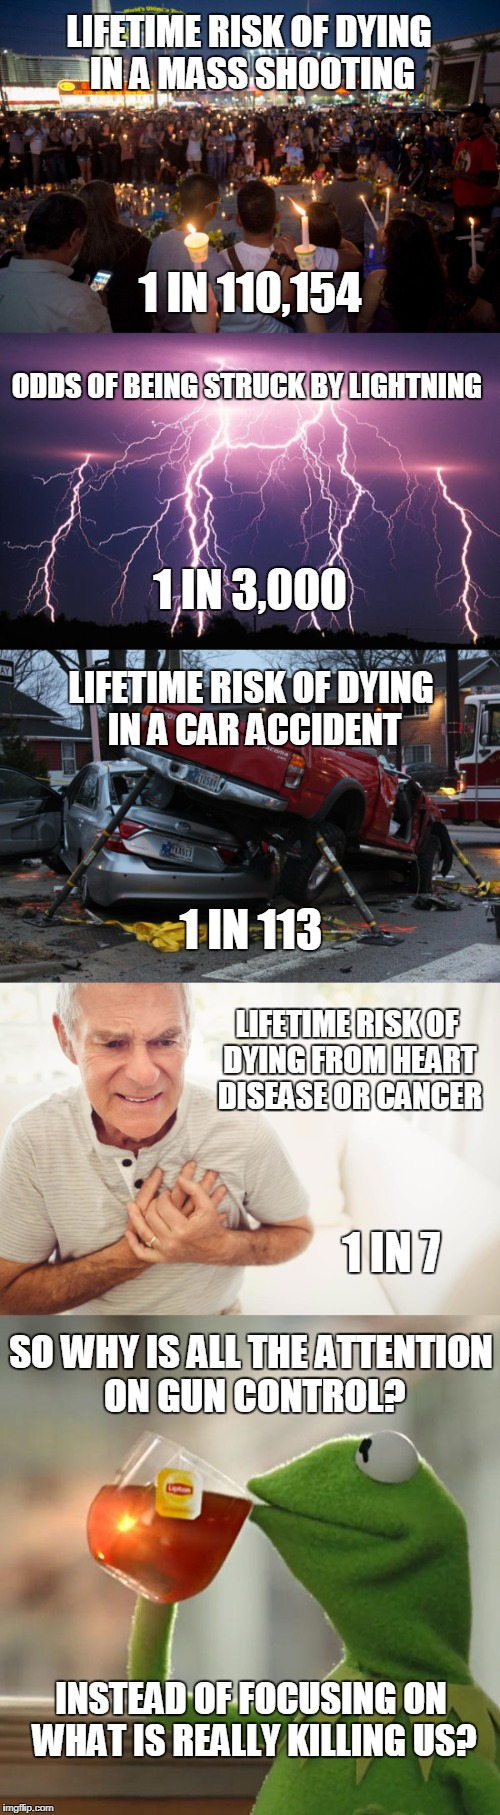 Math Doesn't Lie, But That's None of My Business. | LIFETIME RISK OF DYING IN A MASS SHOOTING 1 IN 110,154 ODDS OF BEING STRUCK BY LIGHTNING 1 IN 3,000 LIFETIME RISK OF DYING IN A CAR ACCIDENT | image tagged in gun control,statistics,fake news,fake outrage | made w/ Imgflip meme maker